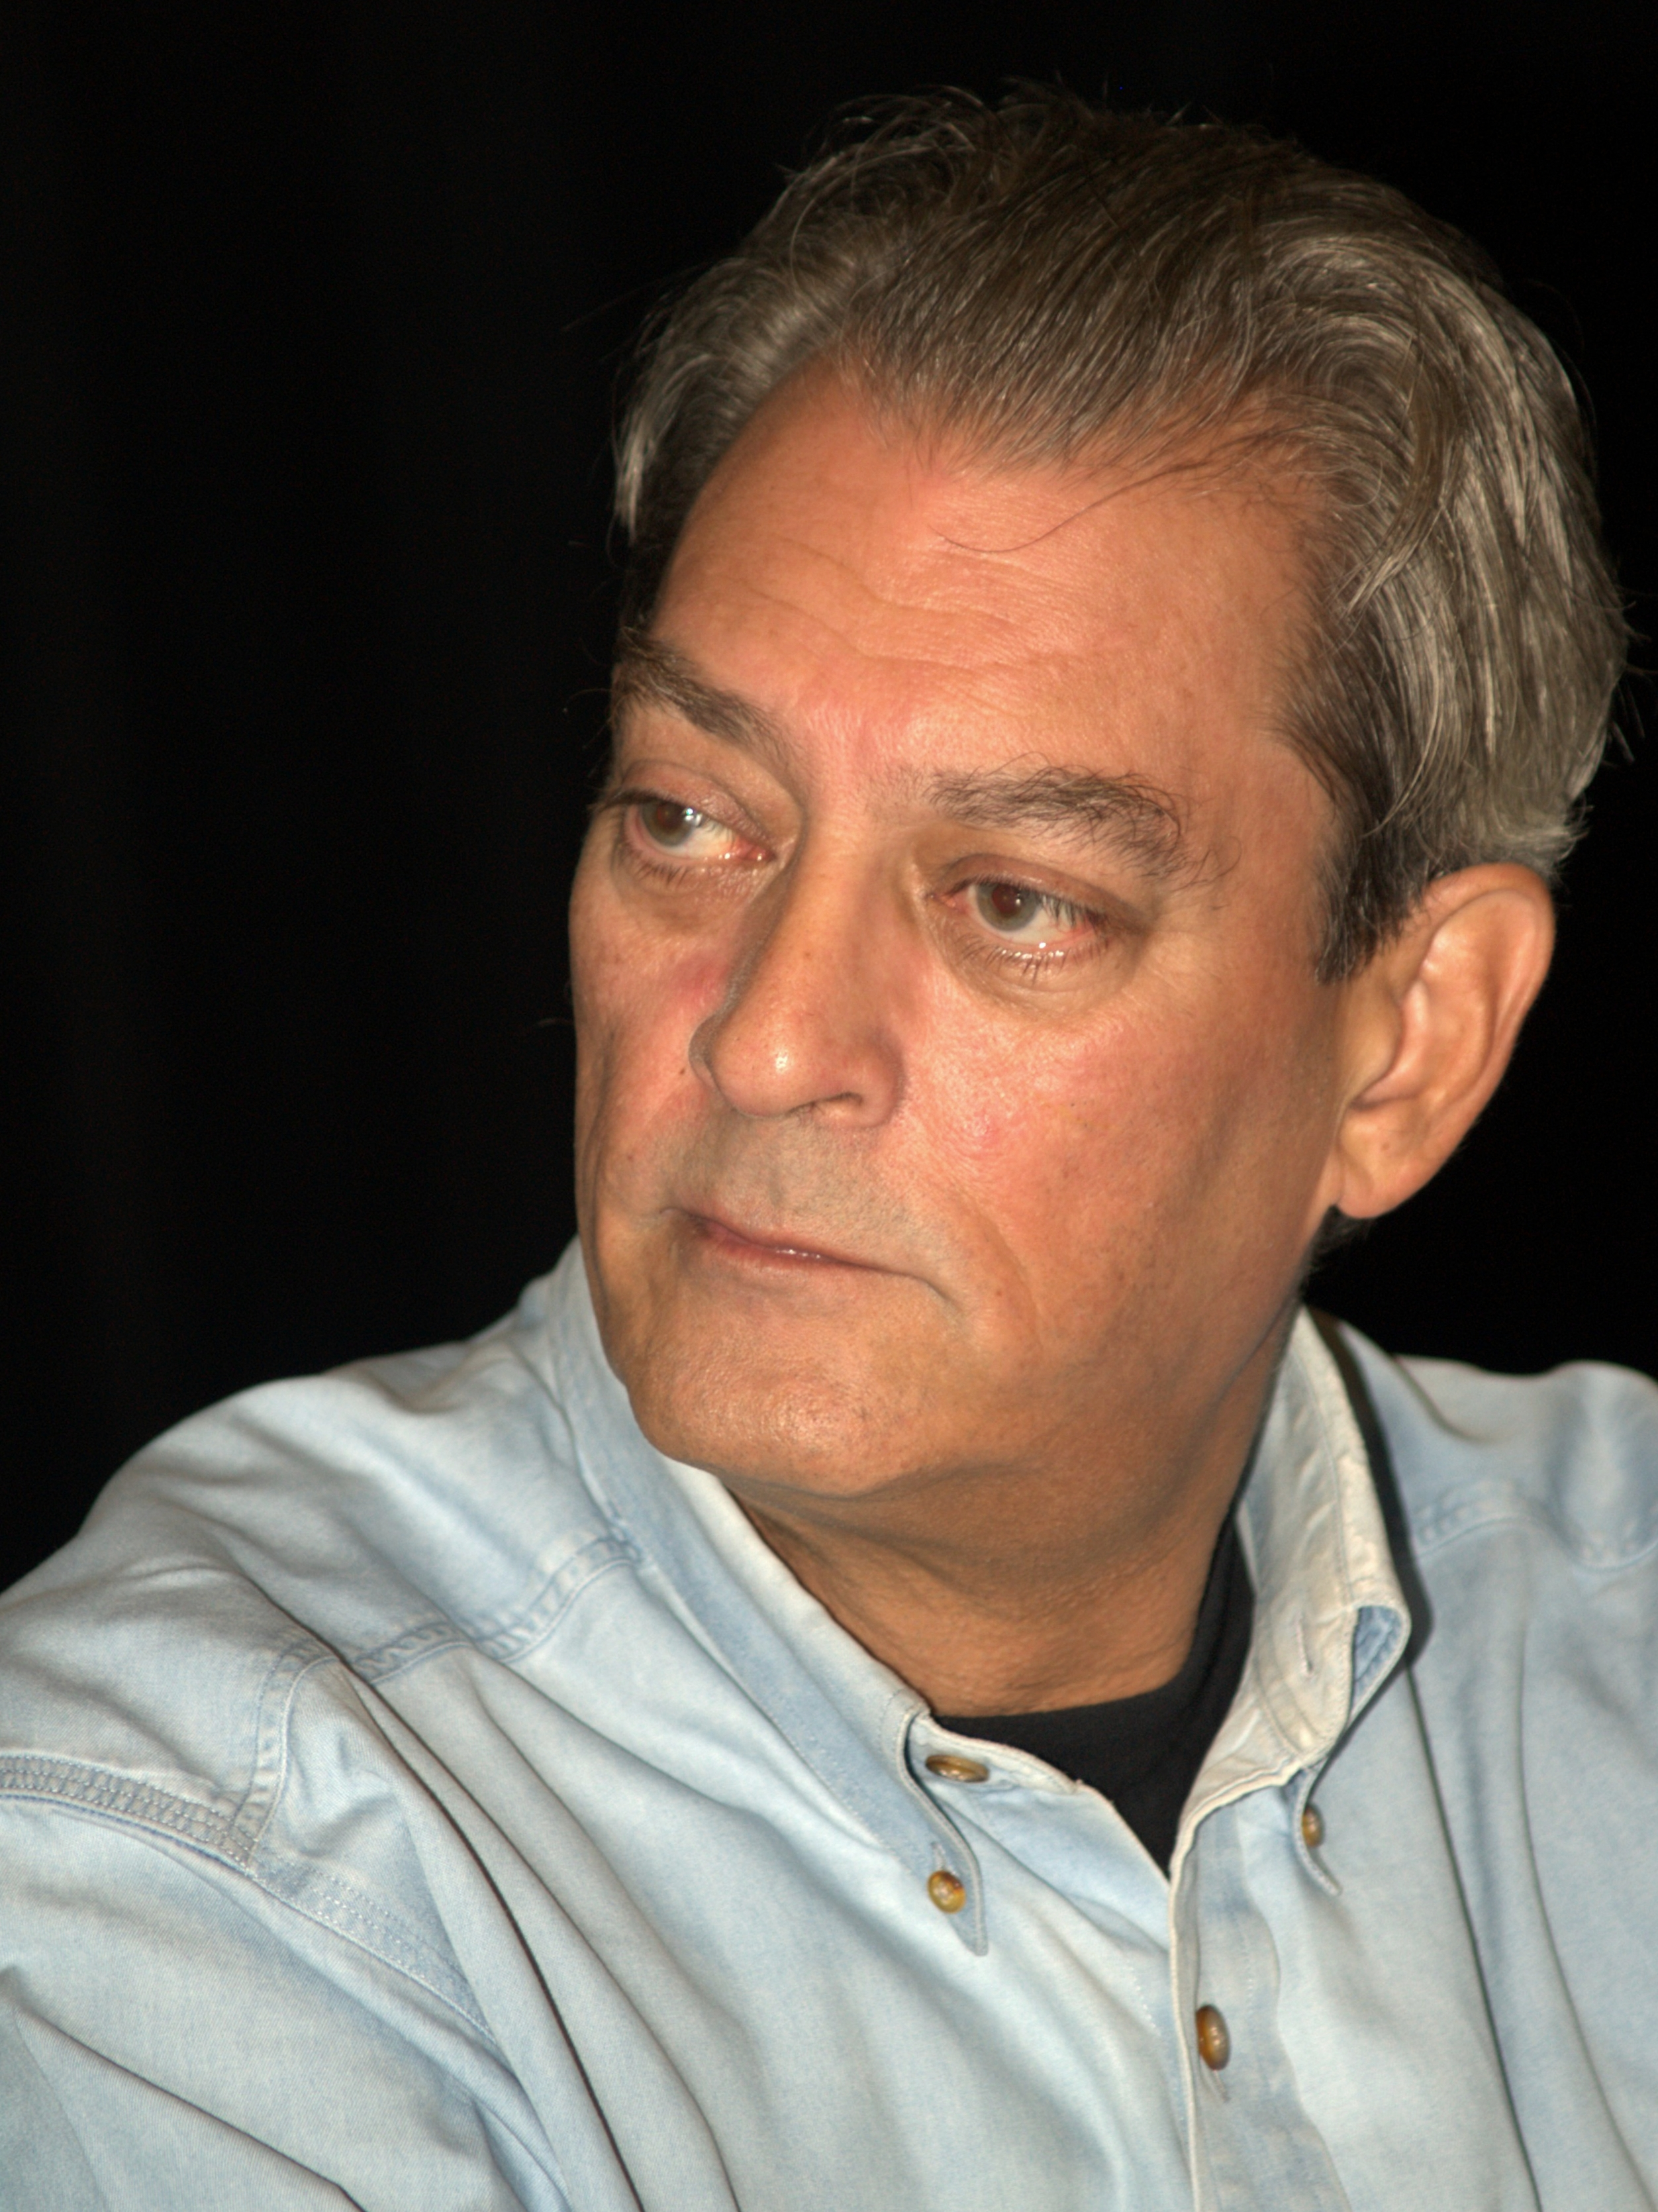 Auster at the 2010 [[Brooklyn Book Festival]]